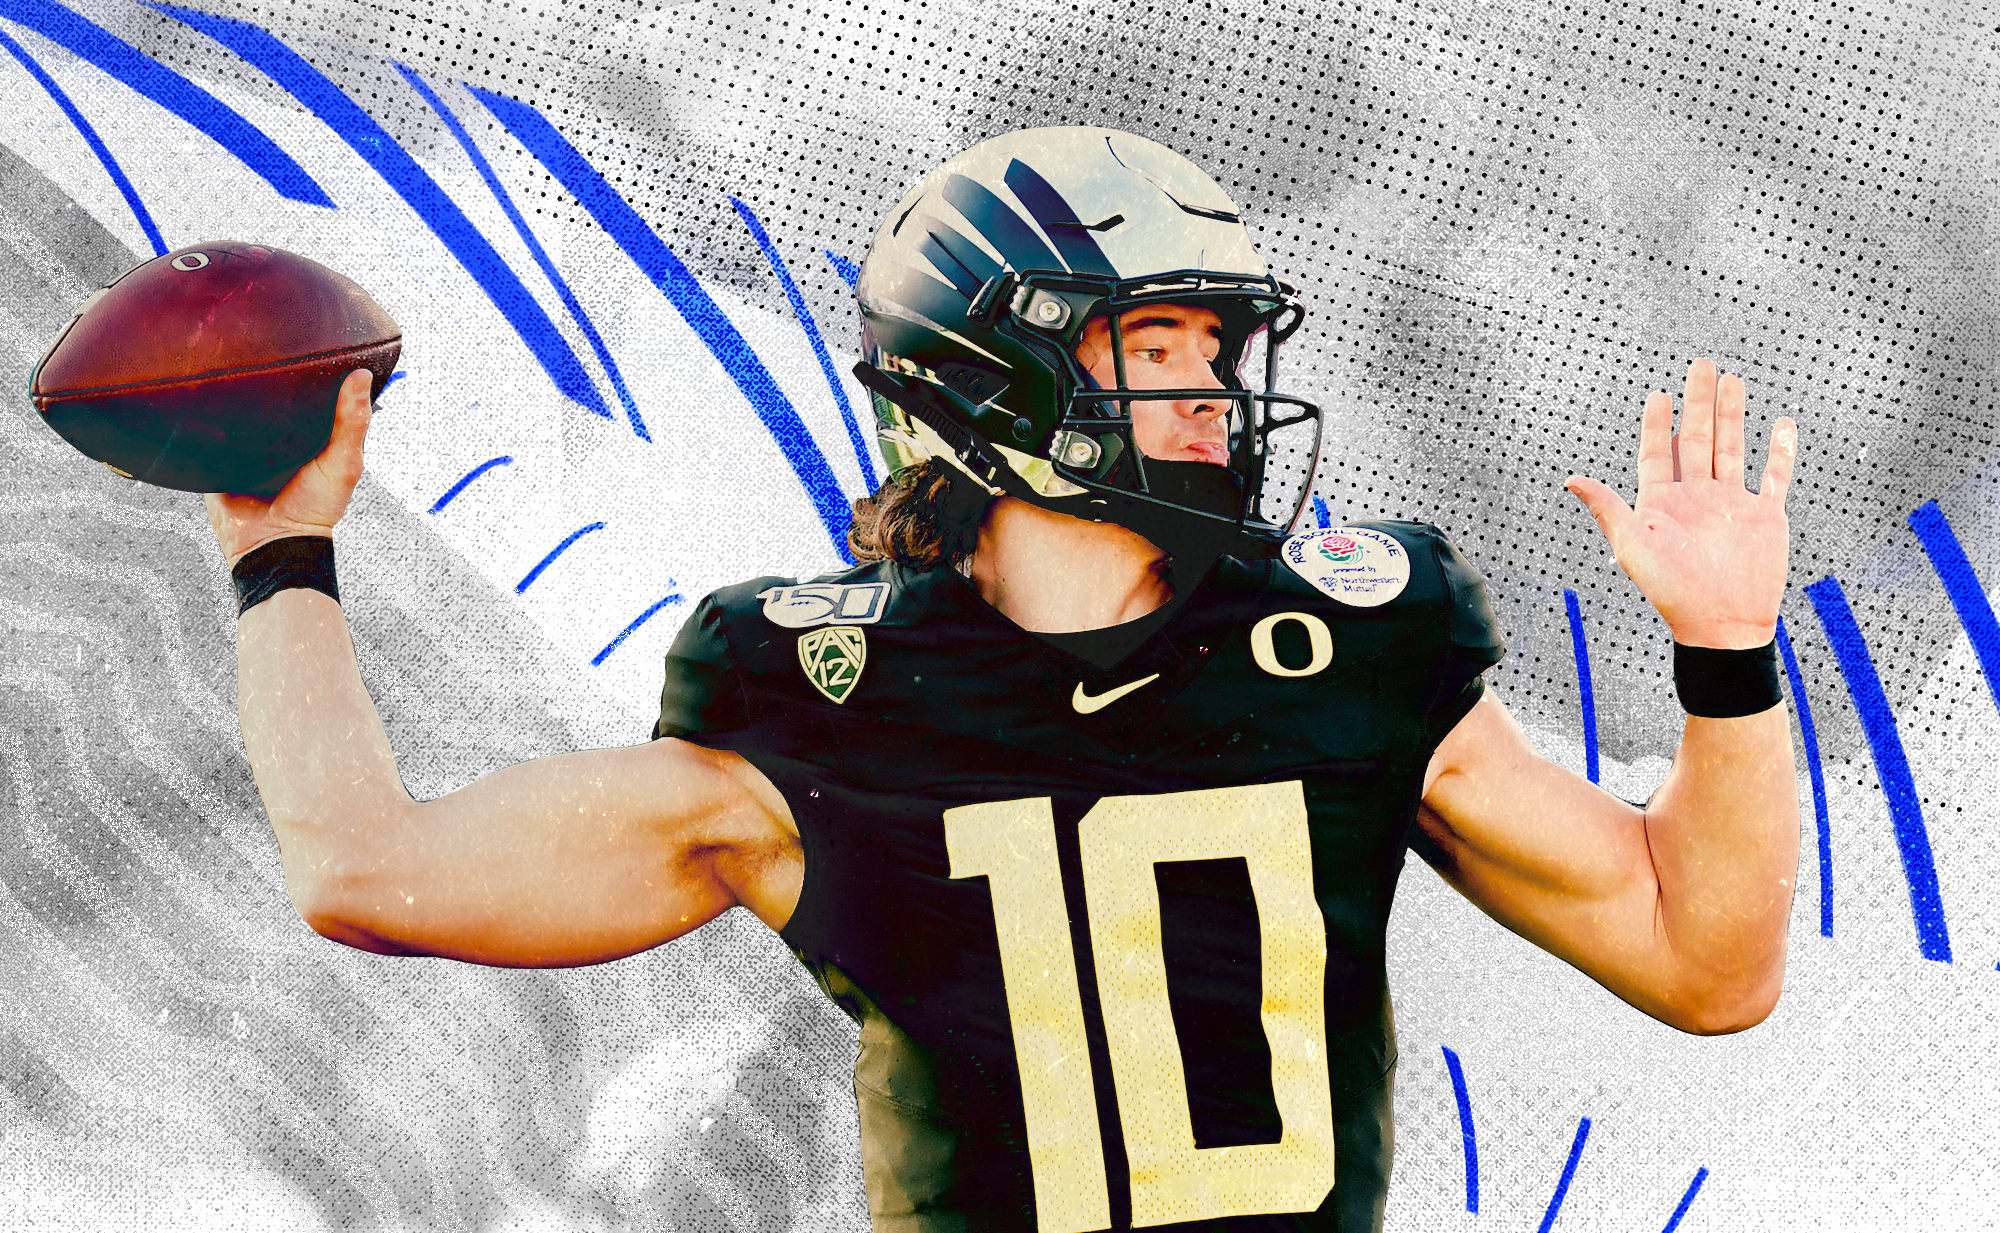 A photo of NFL QB prospect Justin Herbert throwing a pass at Oregon, superimposed on a white background with blue lines and gray dots